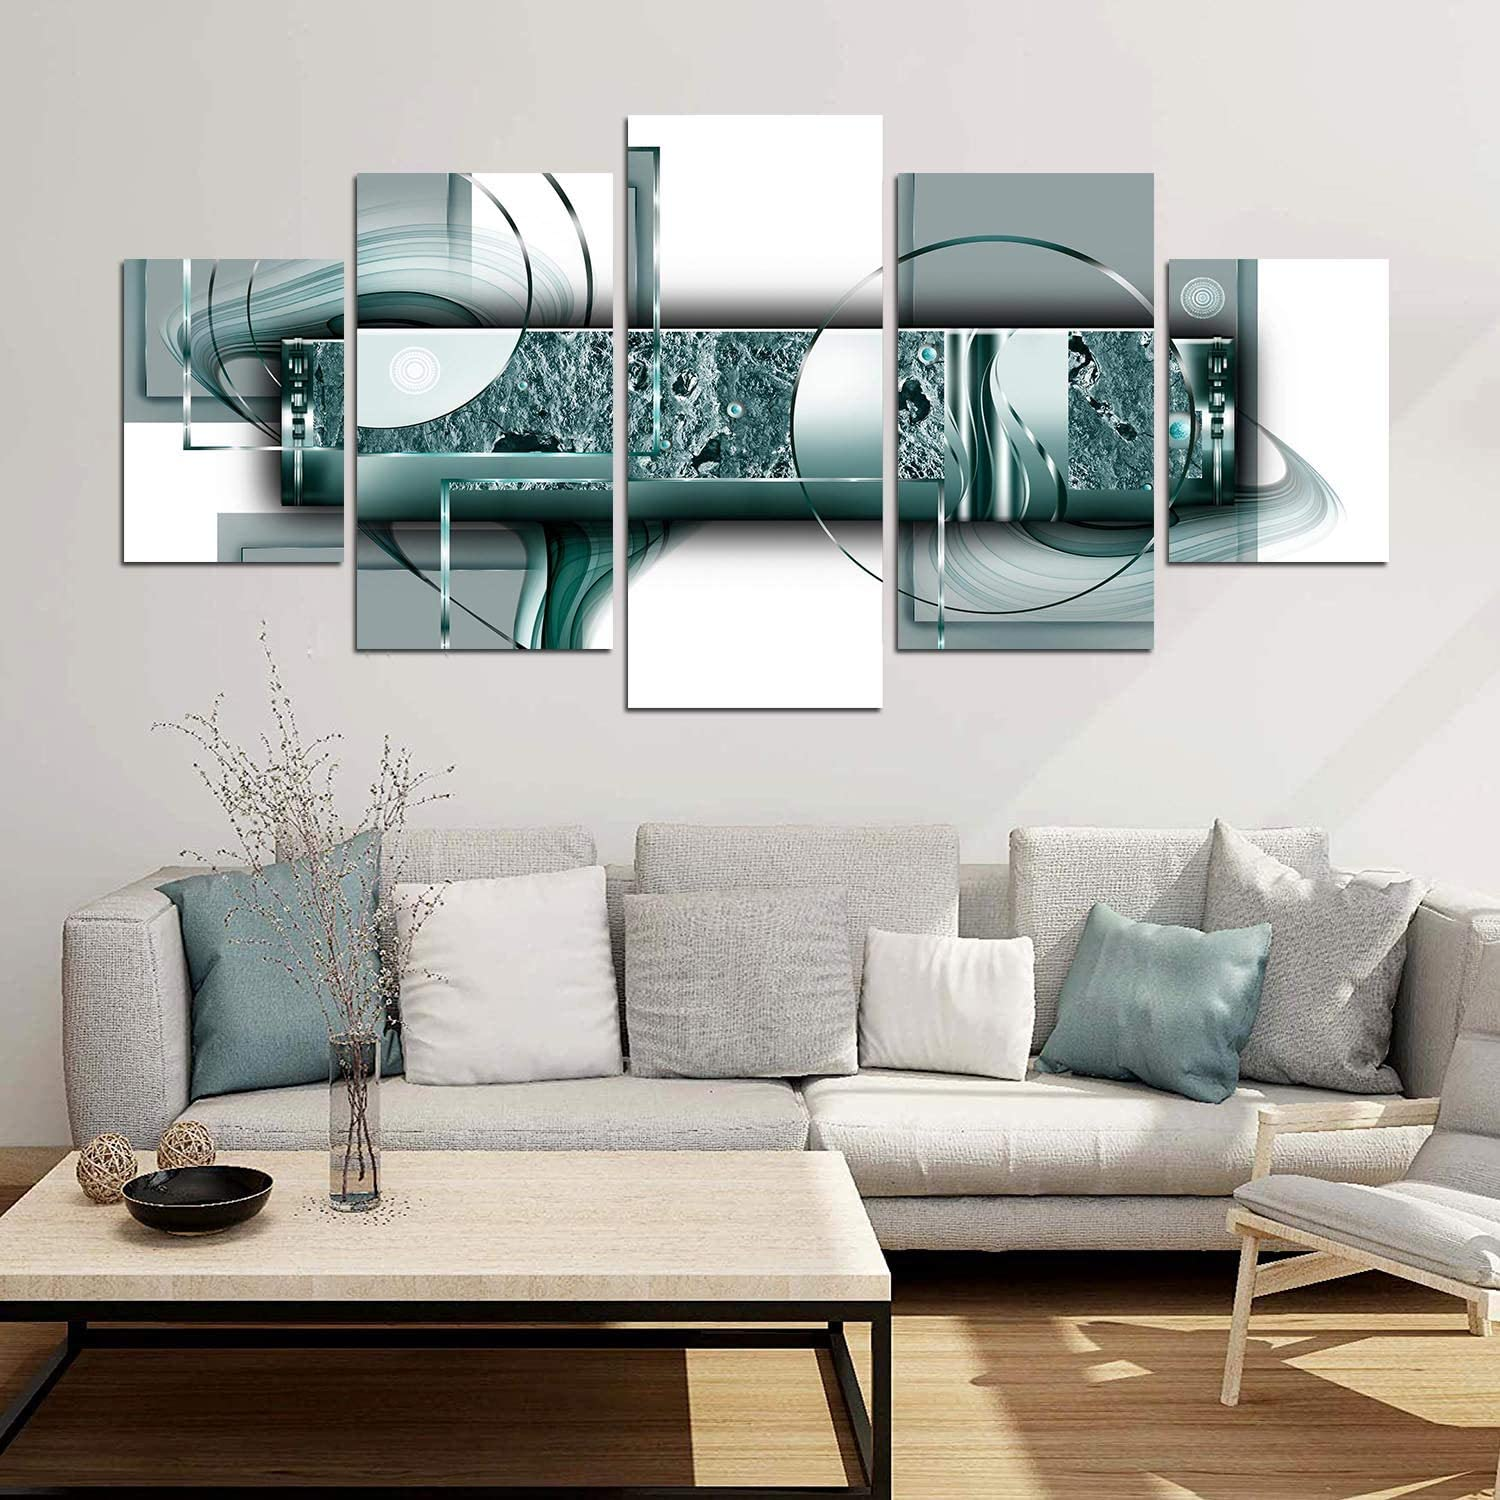 yj_art Green Abstract Canvas Print Painting Home Decor 5 Panels Turquoise Wall Art Picture for Living Room Office Decorations Ready to Hang (C,Overall Size: 60''W x 30''H)